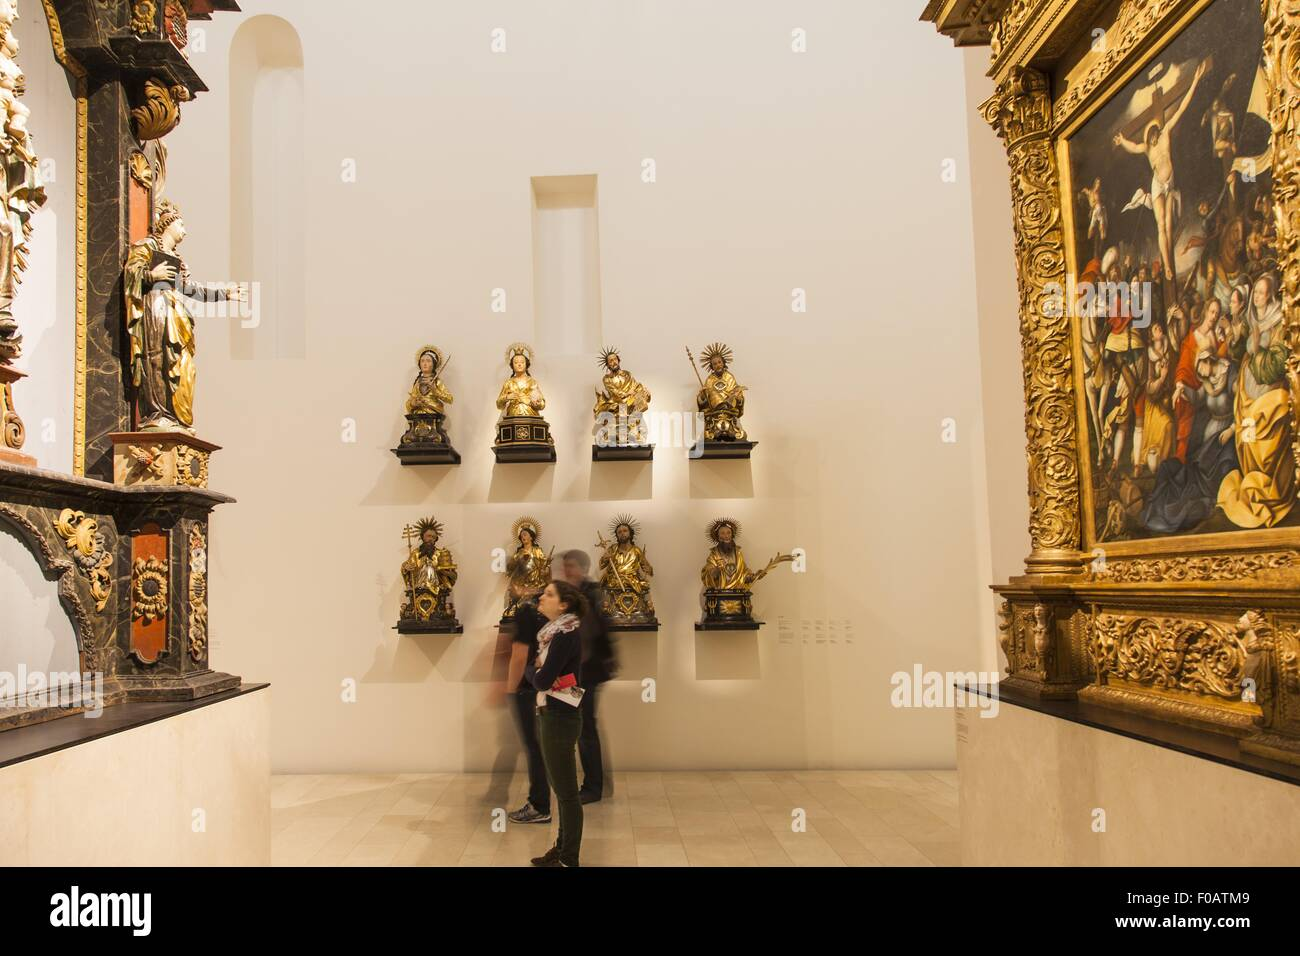 Busts of saints of Freiburg guilds in Augustiner Museum, Freiburg, Germany, blurred motion - Stock Image